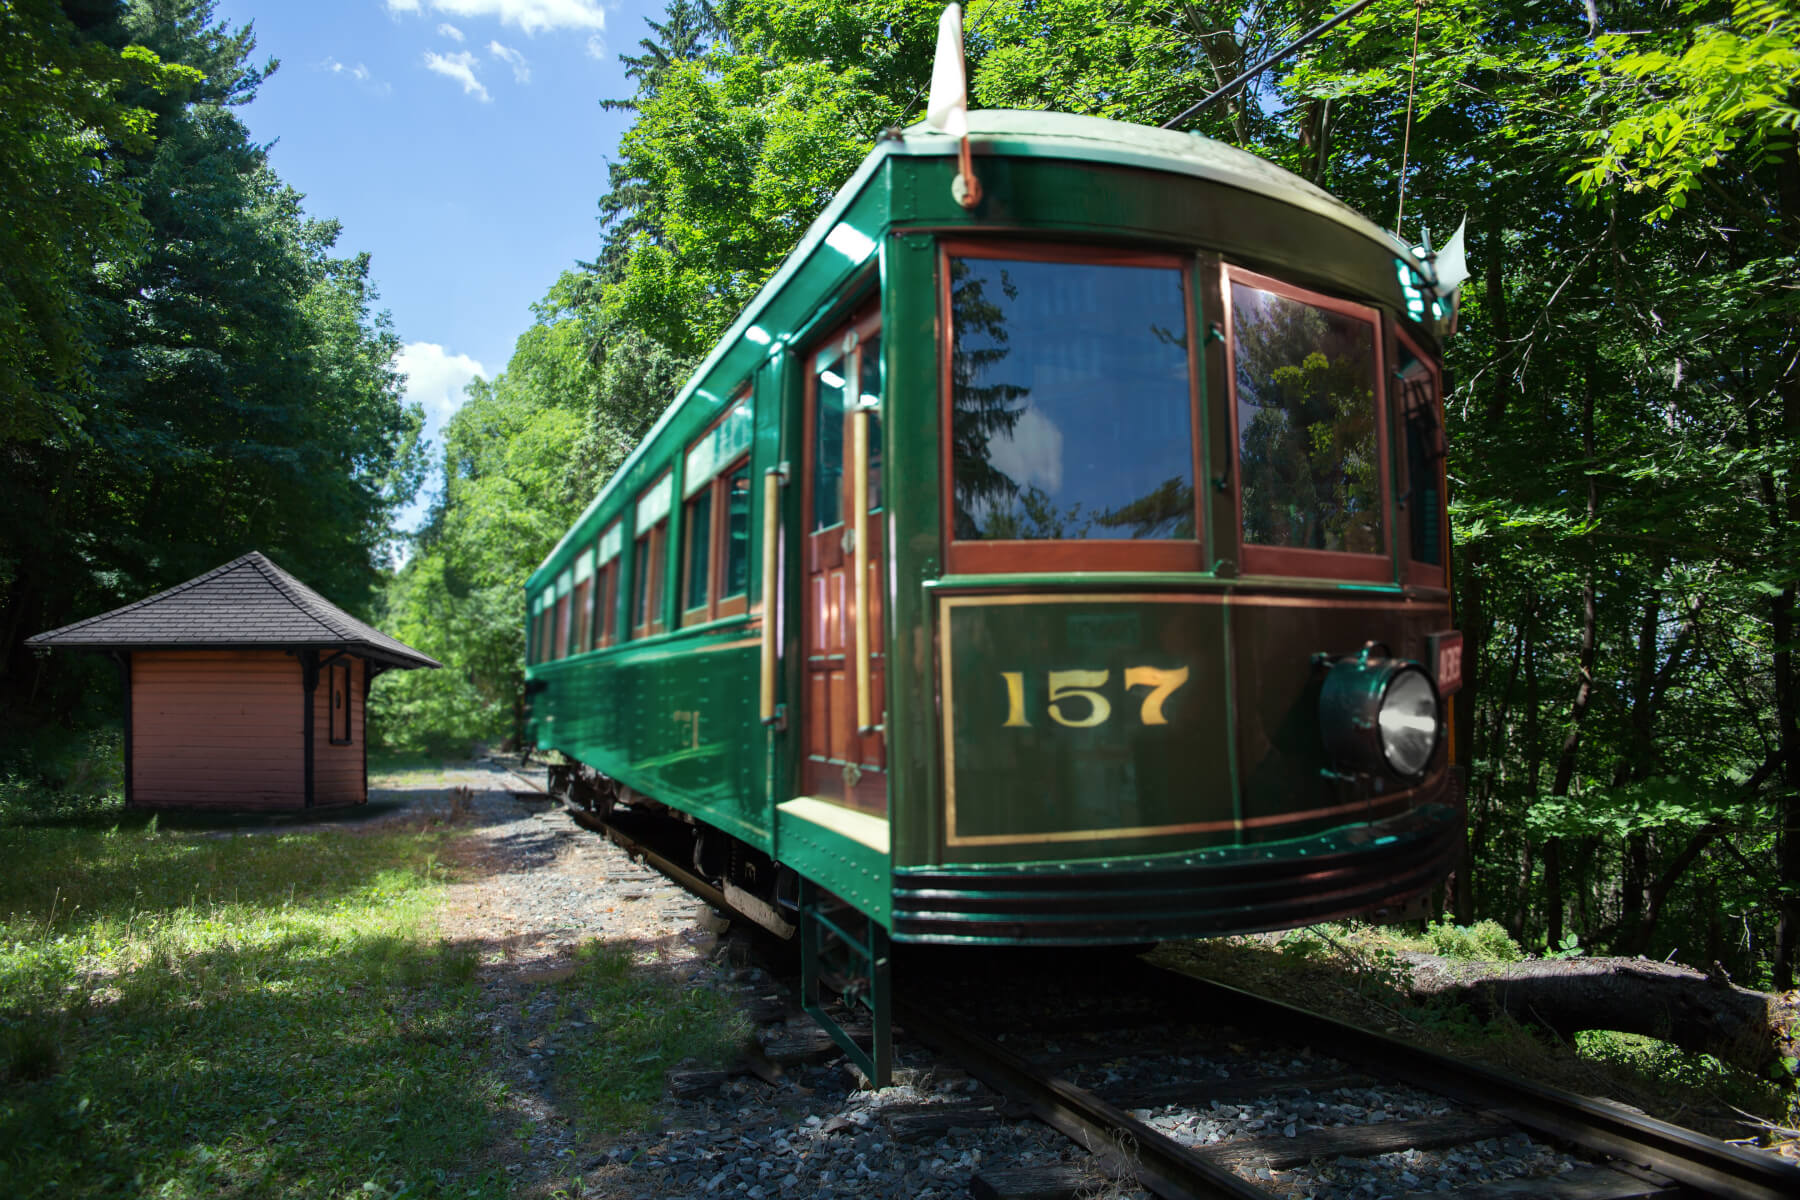 Trolley Car 157